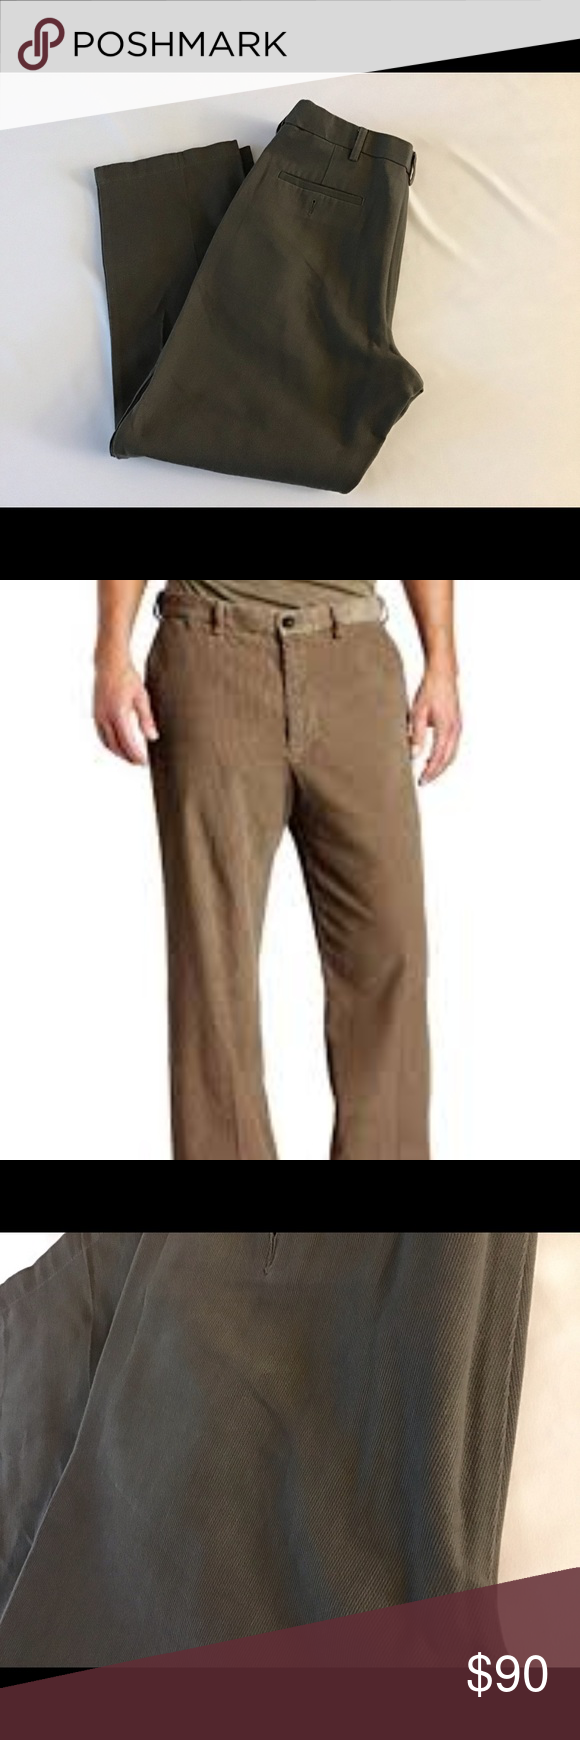 Haggar Mens Heathered Corduroy Hidden Expandable Waist Classic Fit Front Pant